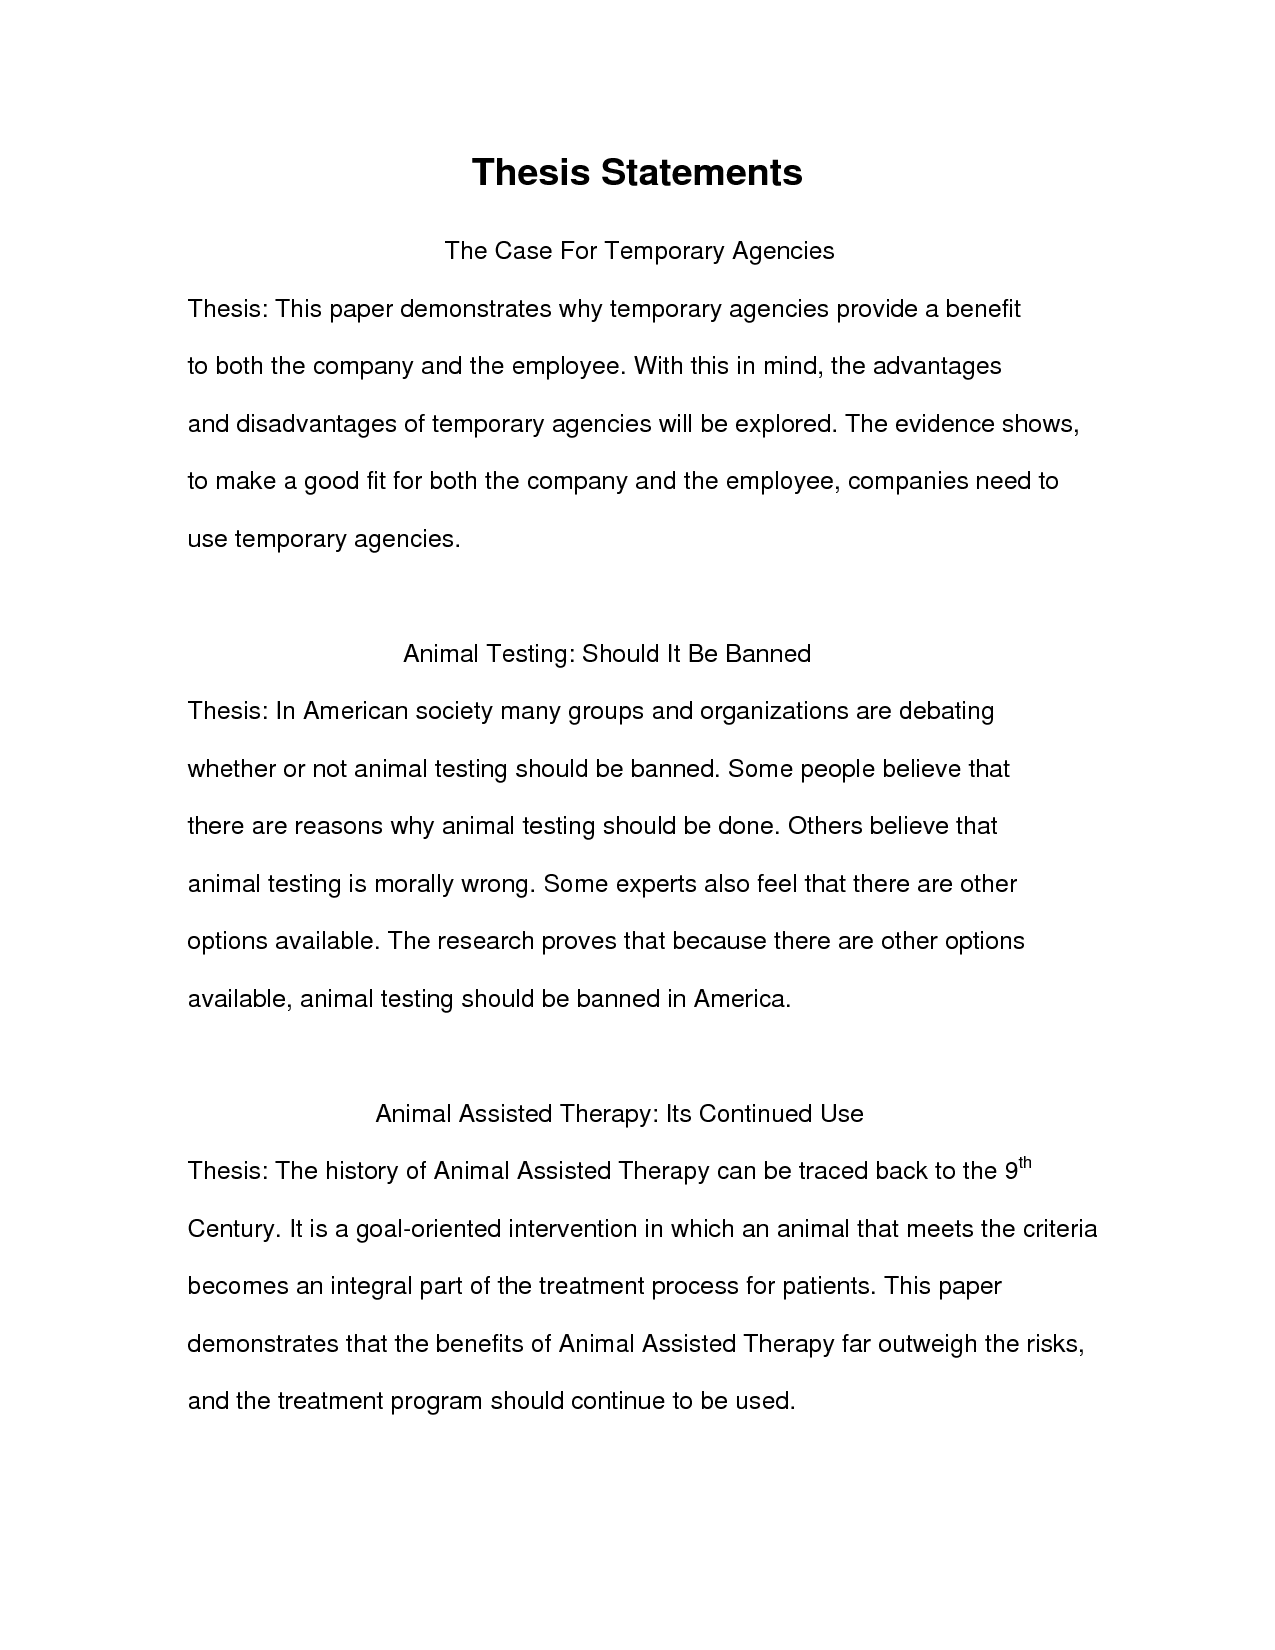 thesis essay template exolgbabogadosco - An Example Of A Thesis Statement In An Essay